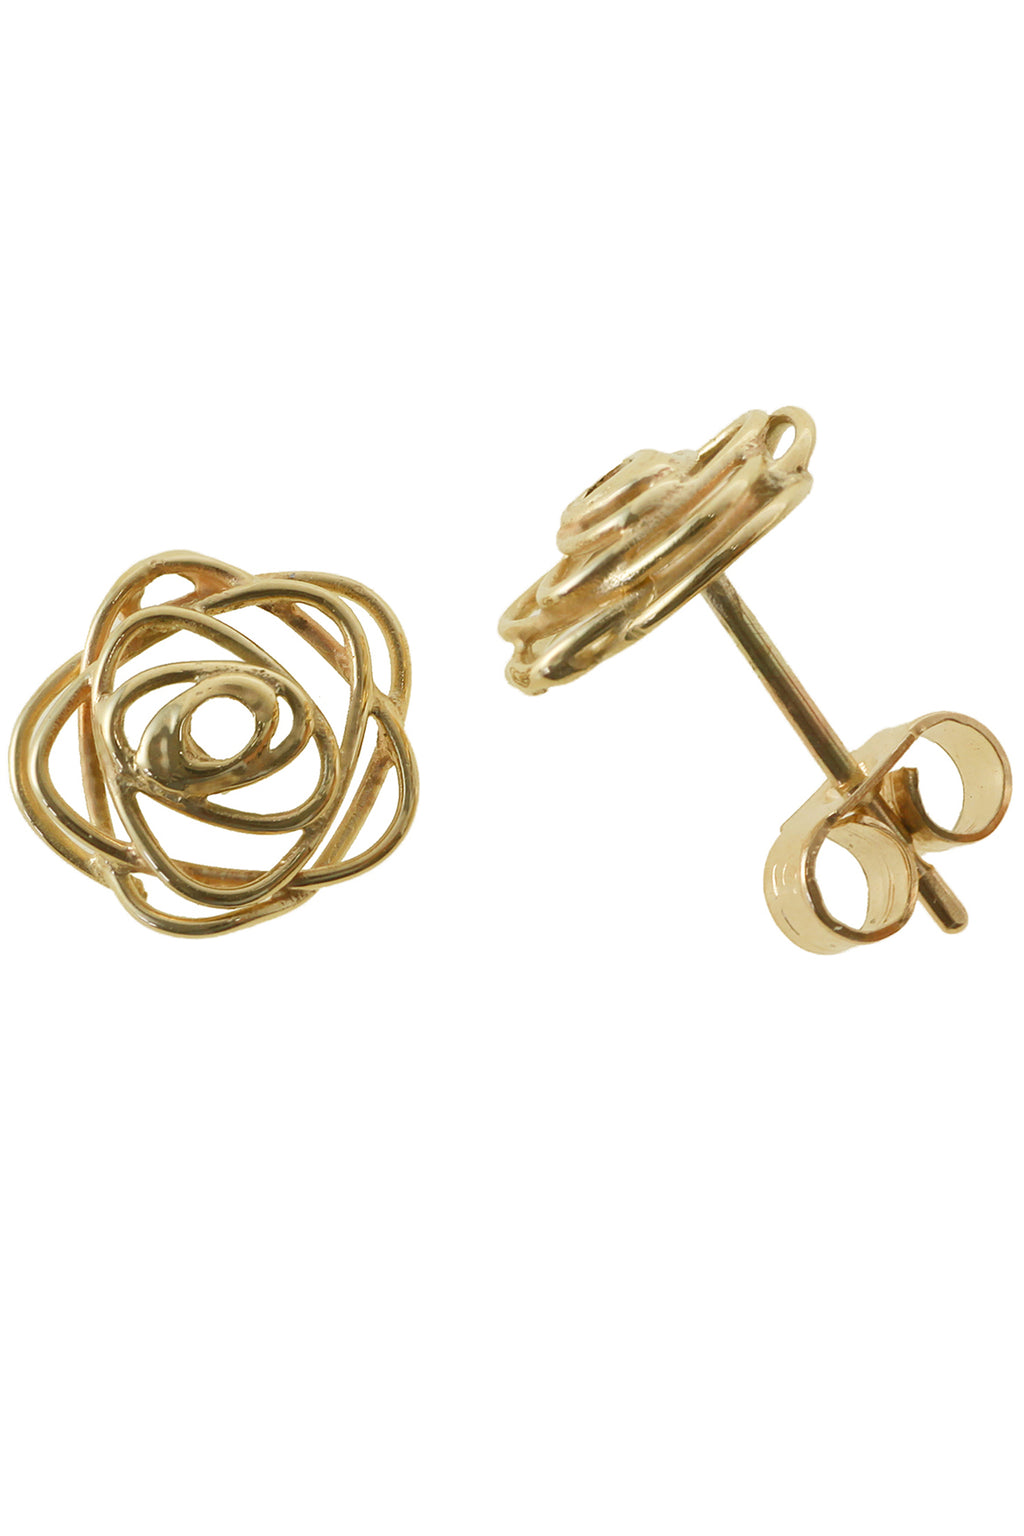 Gold Rose Design Earring